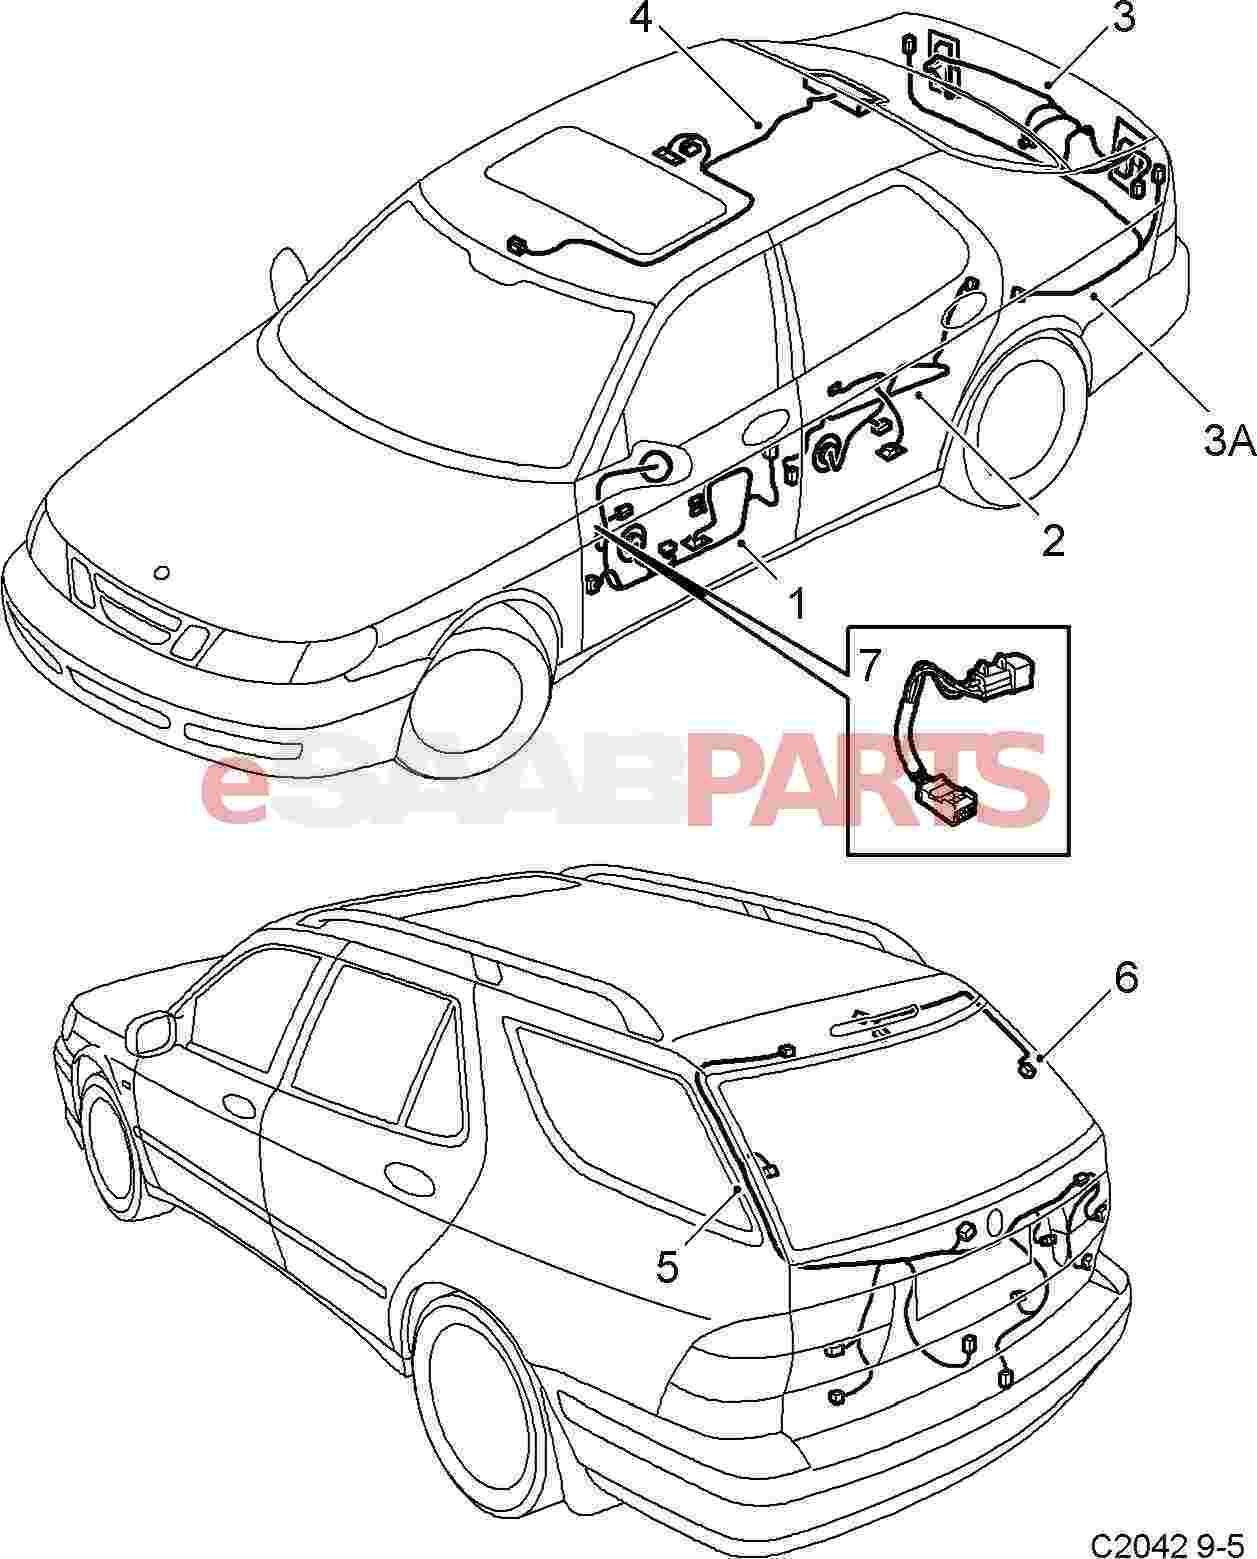 Superb Saab Tail Light Wiring Wiring Diagram Wiring Cloud Hisonuggs Outletorg